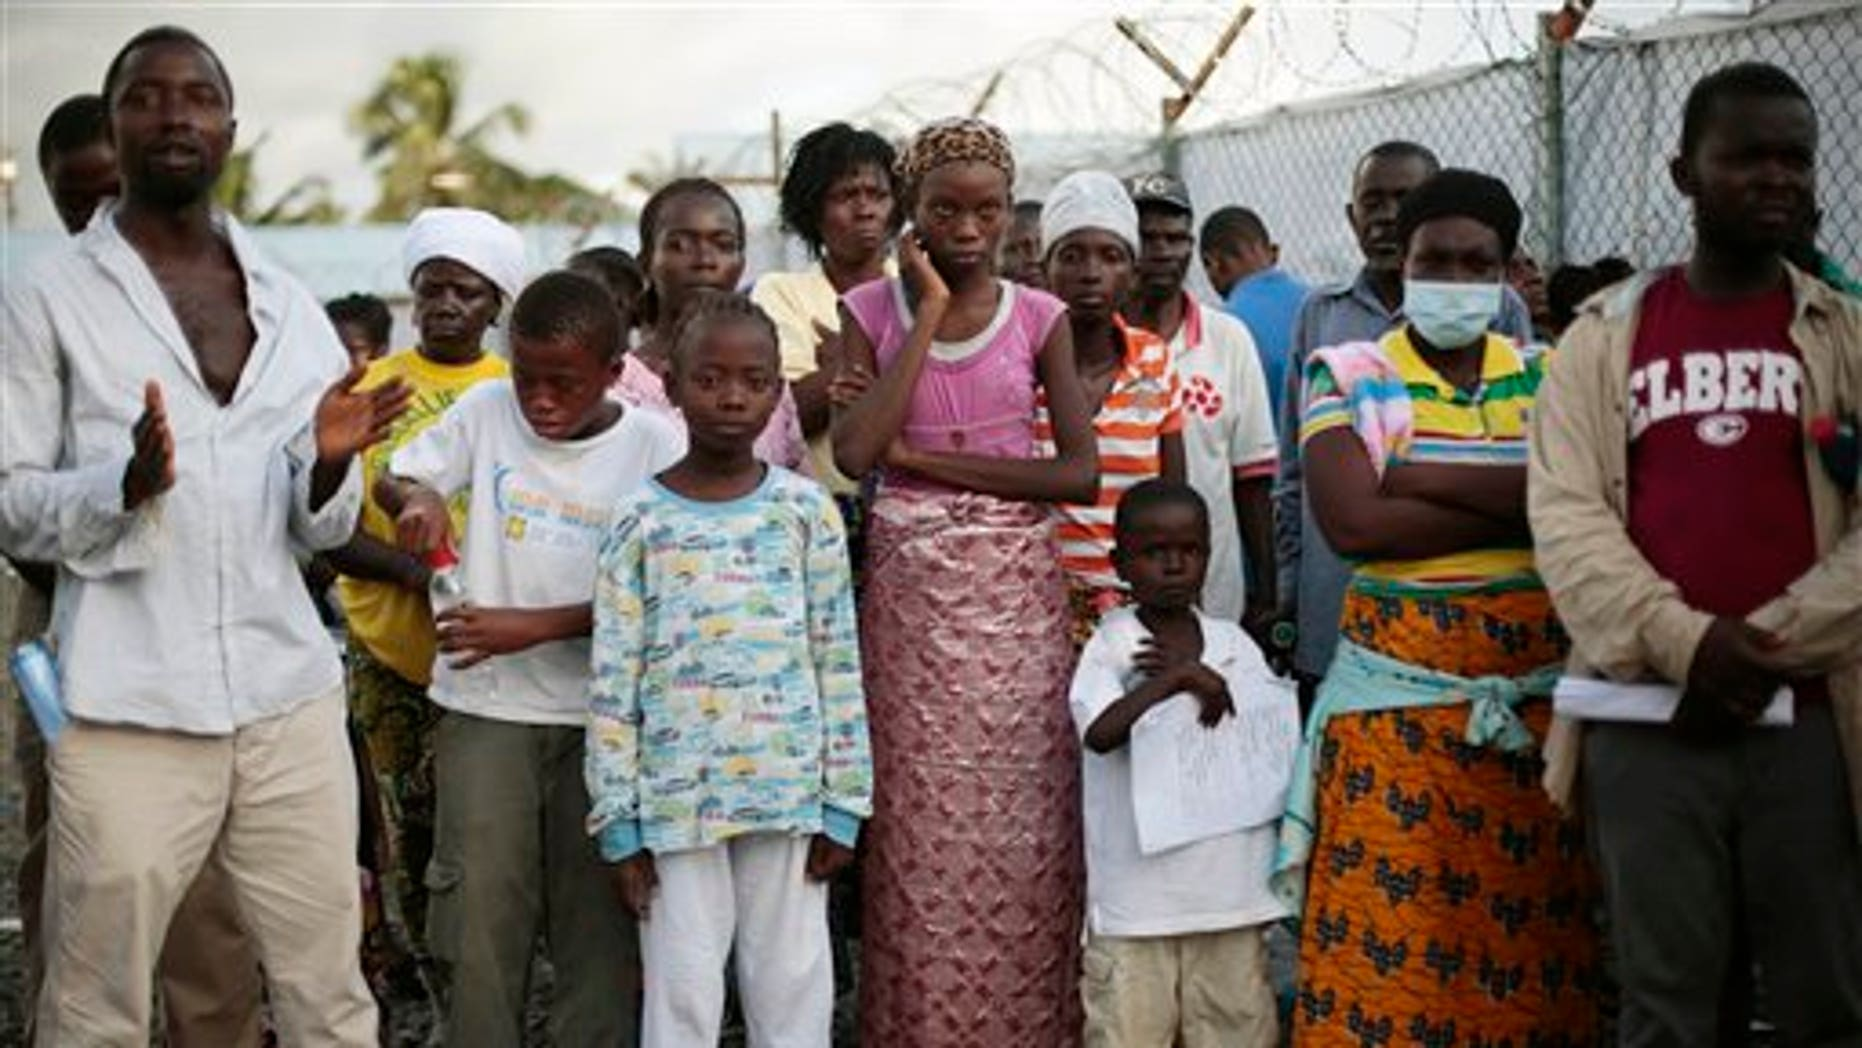 FILE - In this Tuesday, Sept. 30, 2014 file photo, patients being discharged from the Island Clinic Ebola treatment center in Monrovia, Liberia, wait to be sprayed with disinfectant. (AP Photo/Jerome Delay, File)